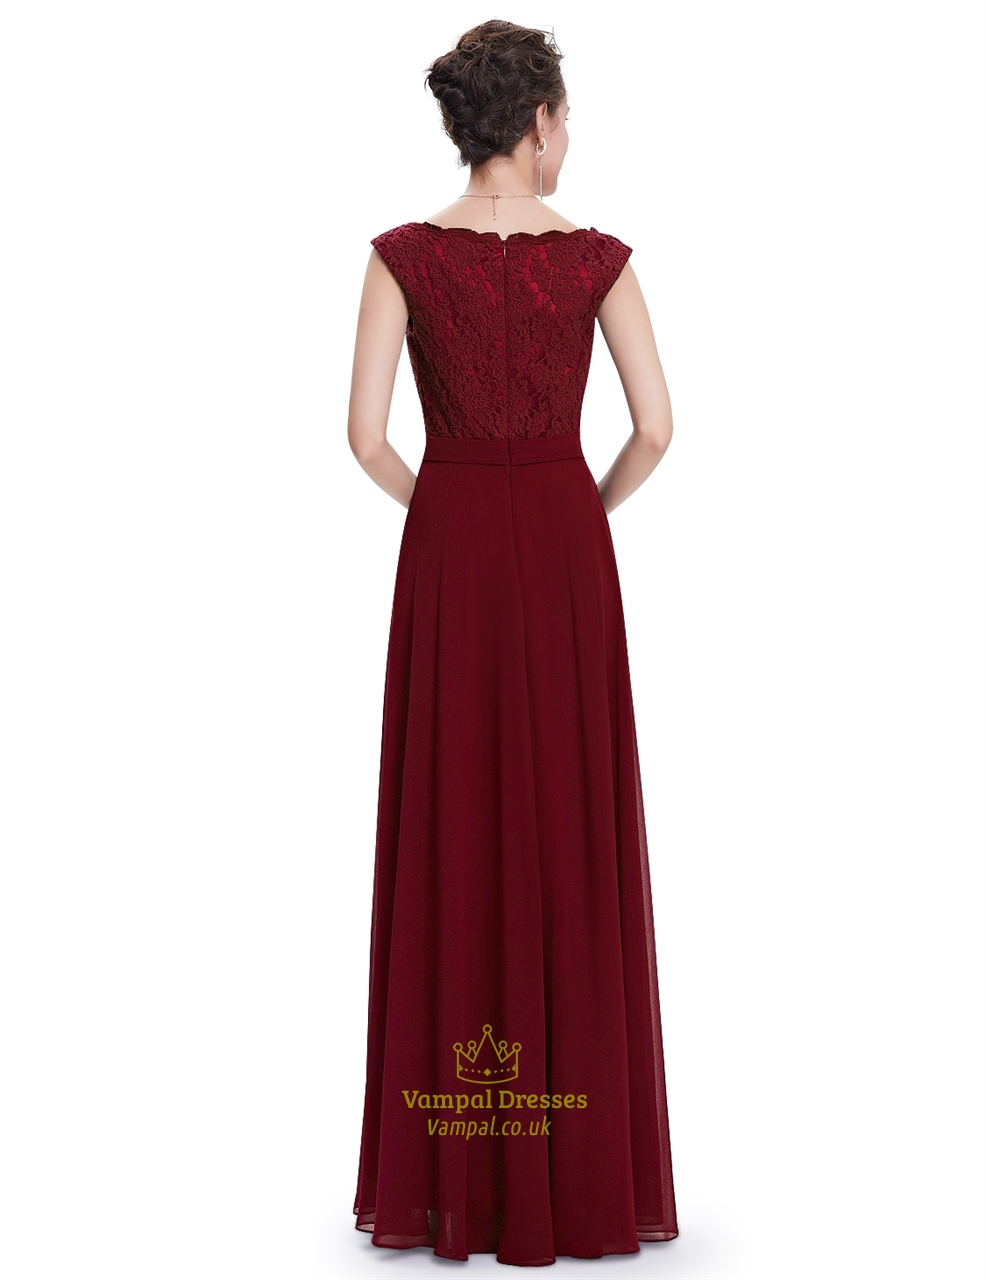 Burgundy Chiffon Cap Sleeves Long Bridesmaid Dresses With